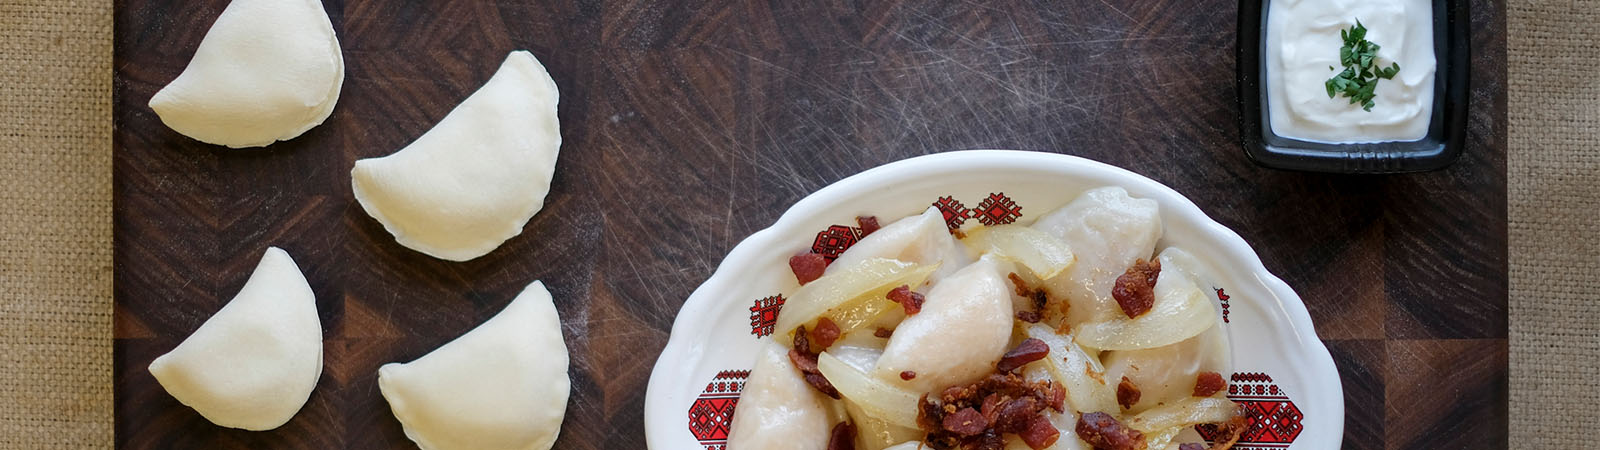 plate of perogies with bacon and onions